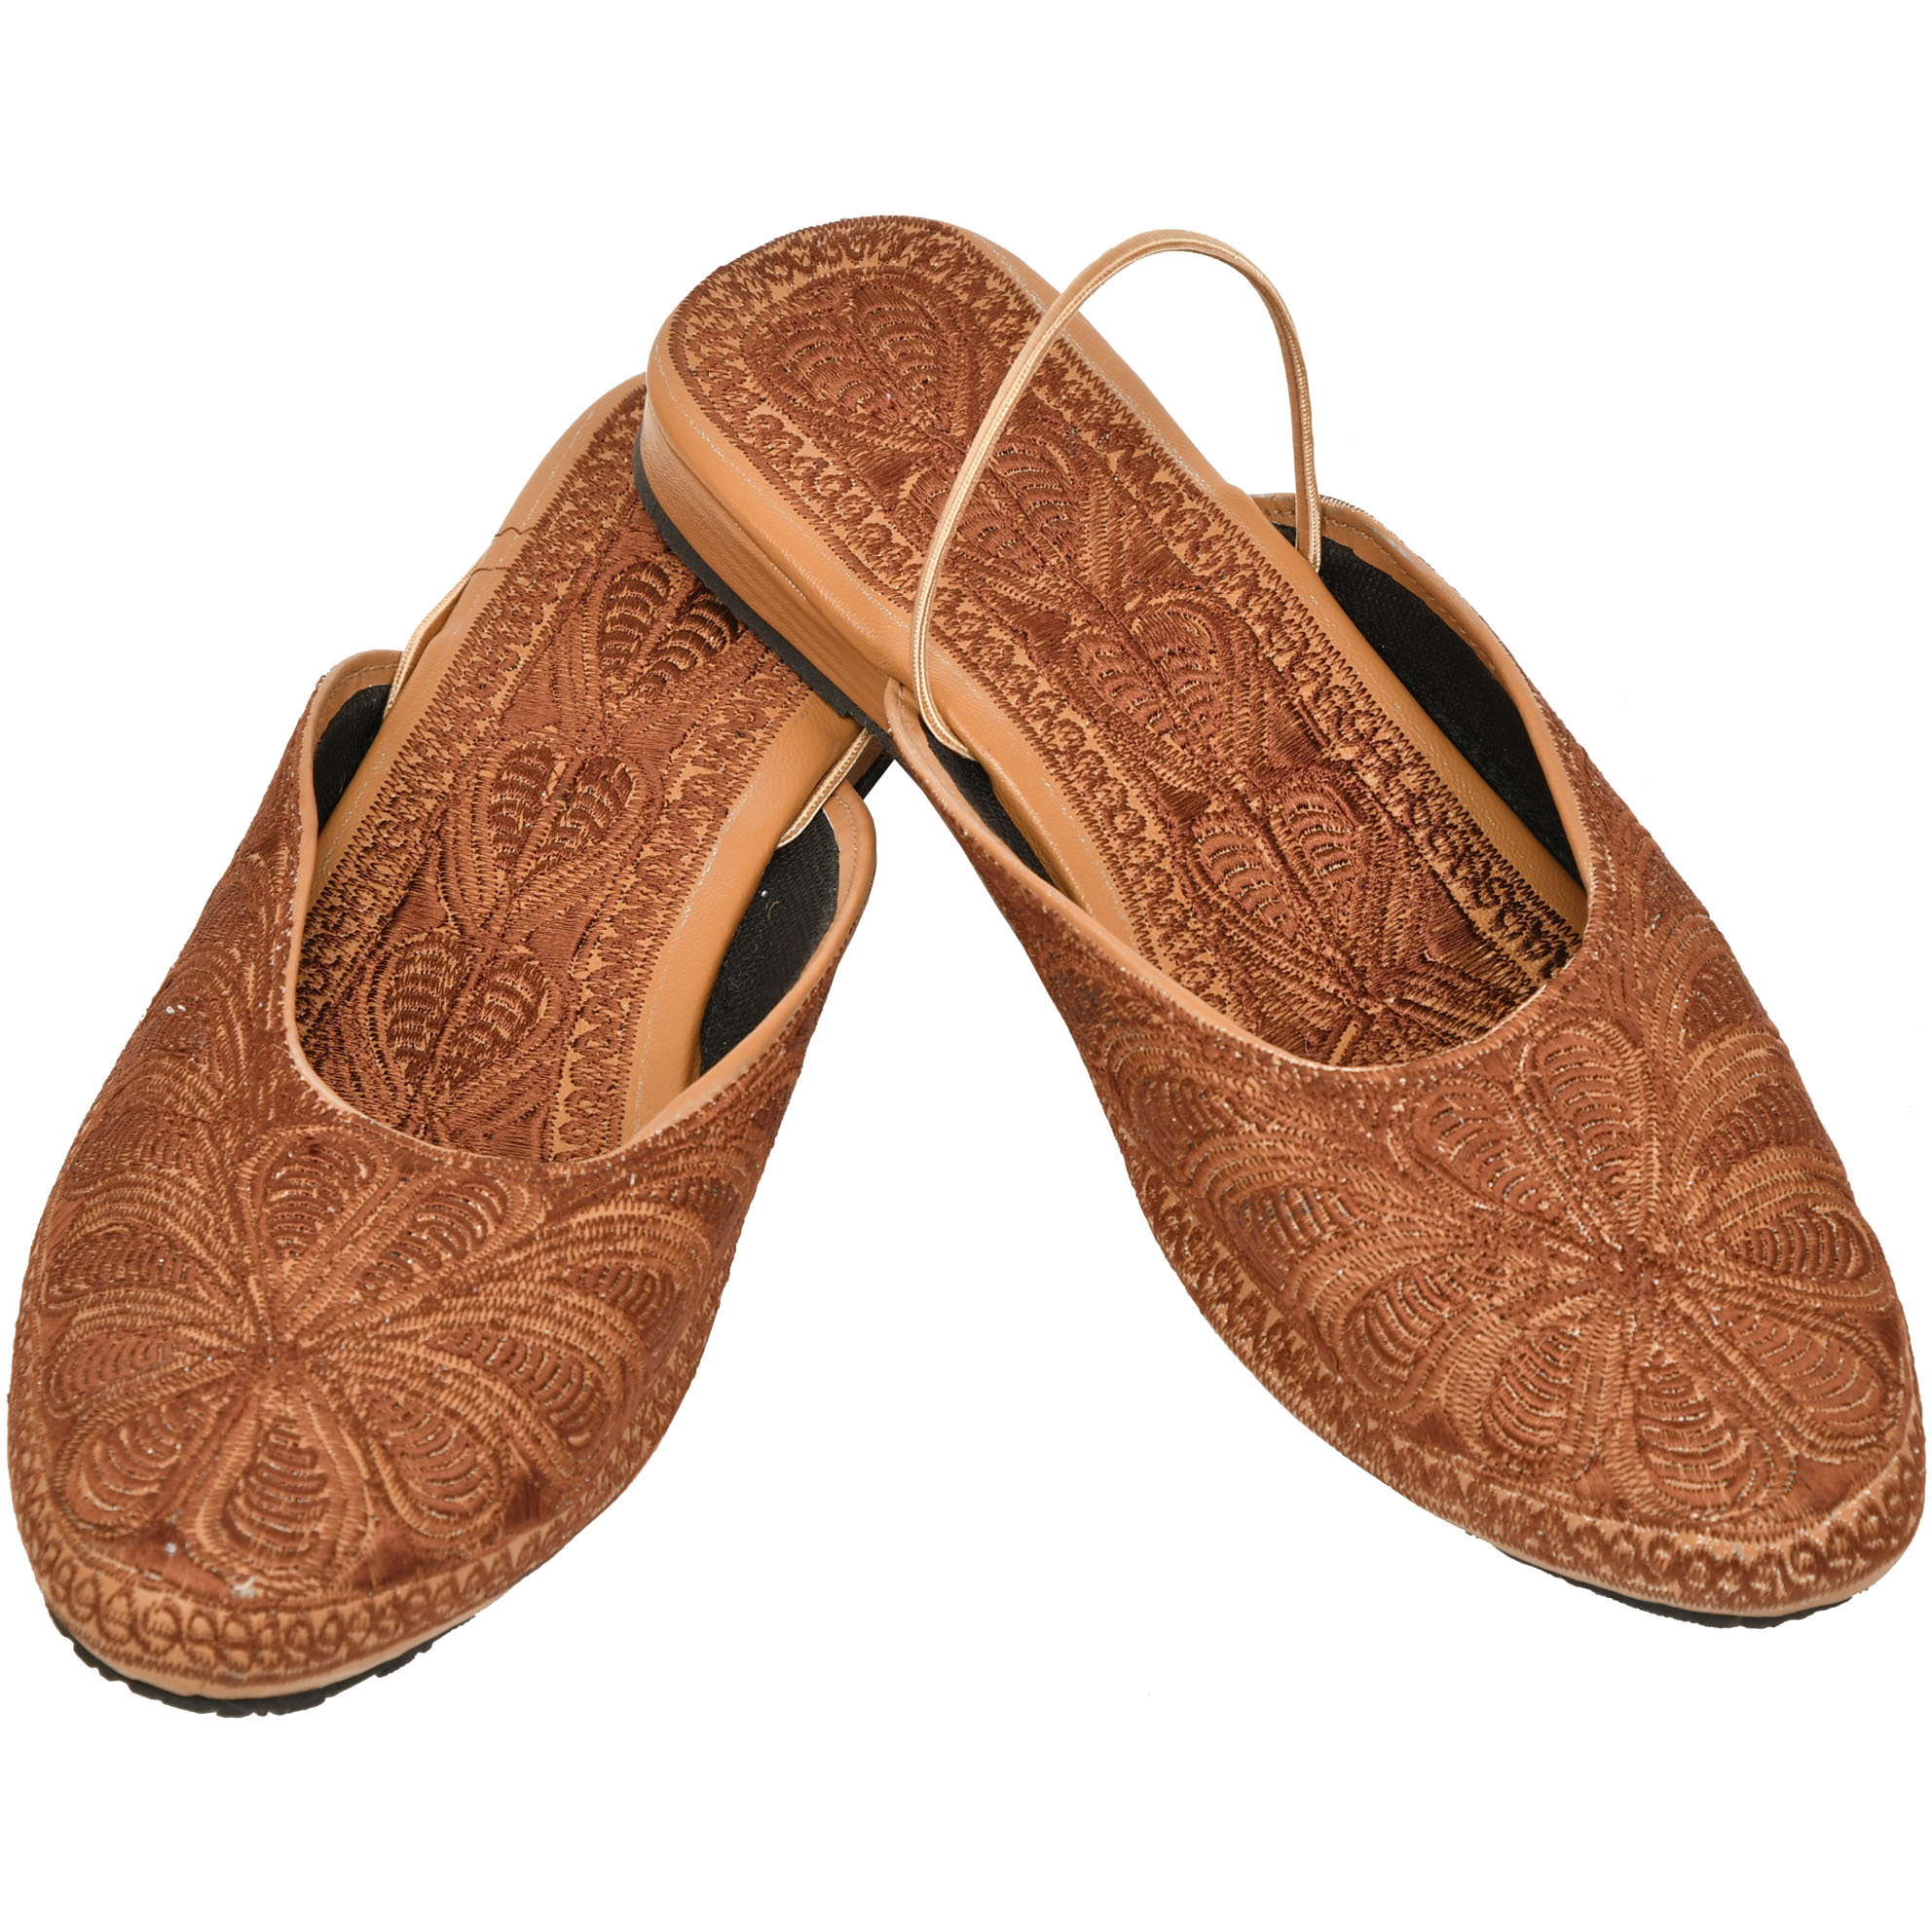 Thrush-Brown Slip-on Sandals with Floral-Embroidery